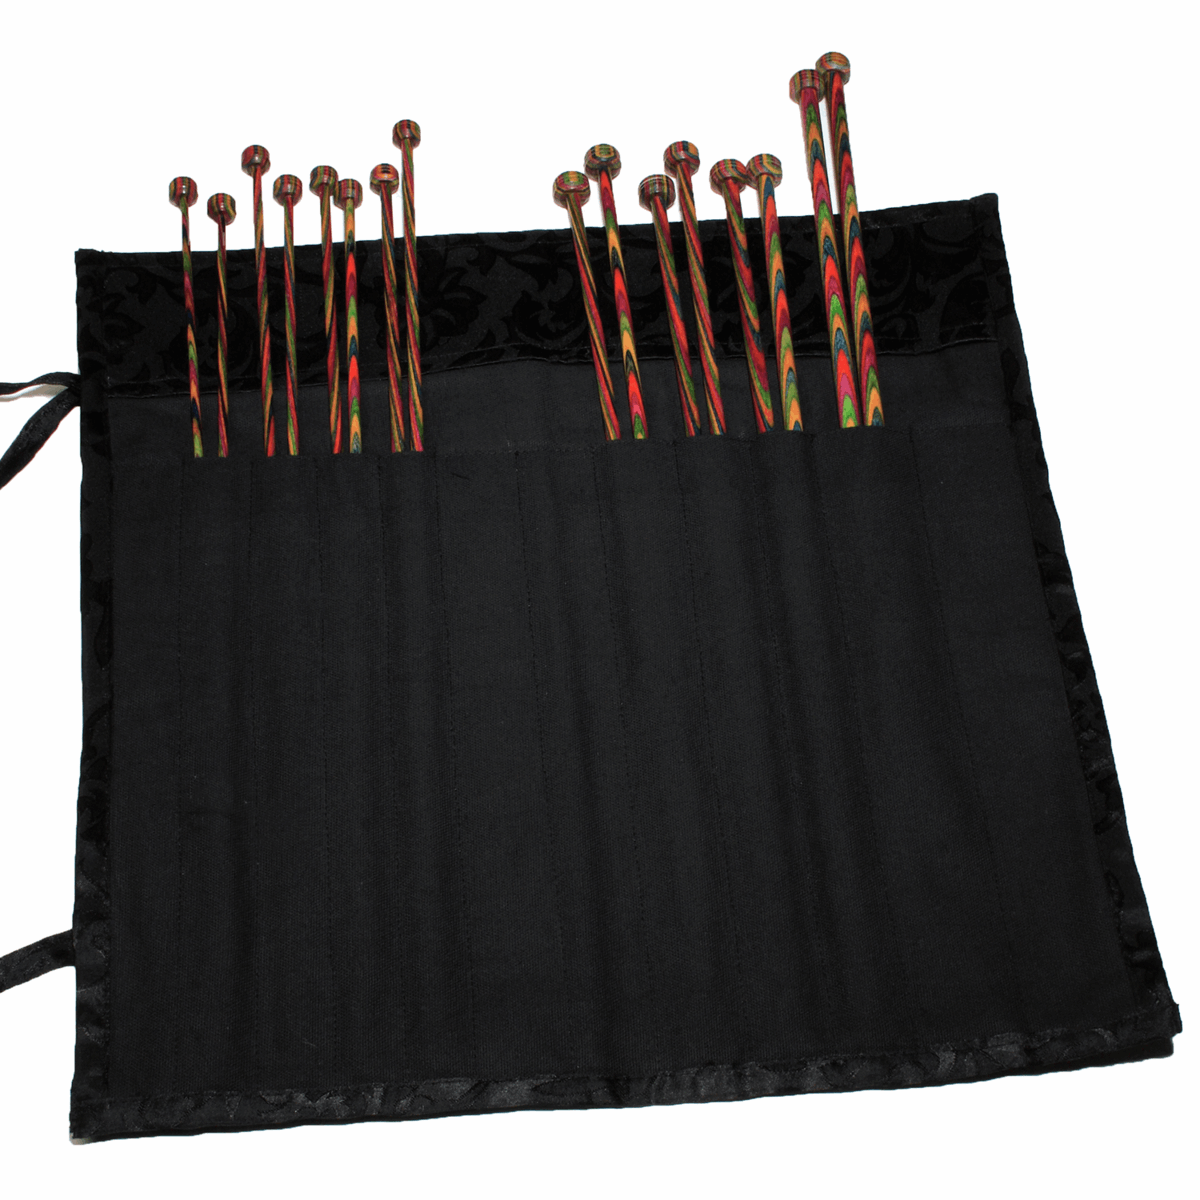 Picture of Fabric Knitting Pin Case: Black Jacquard Wrap-Around: 40cm